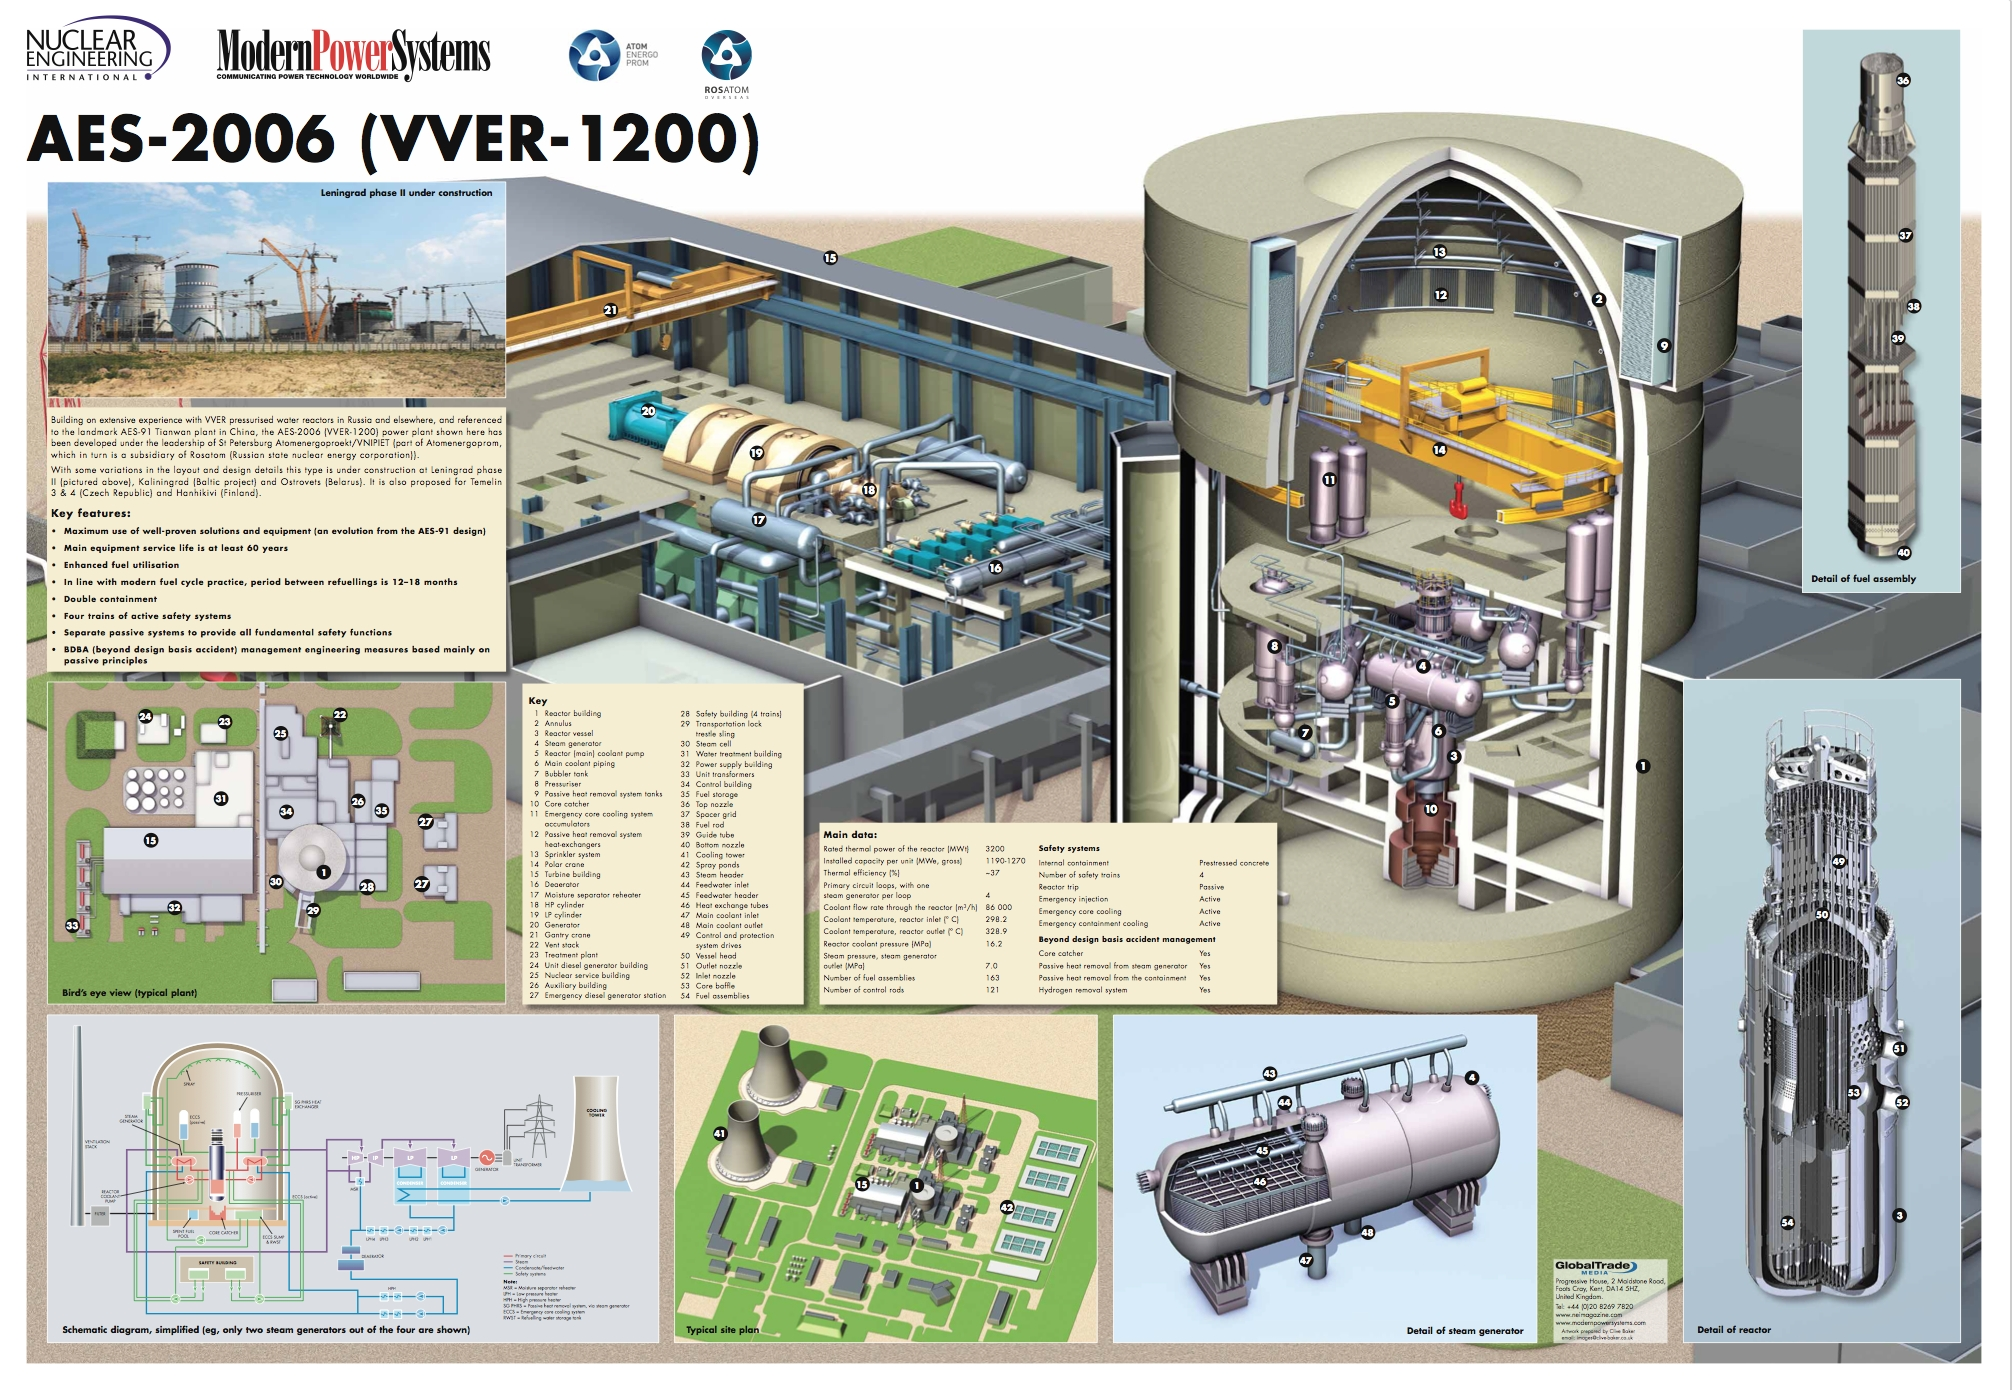 How Do Nuclear Power Plants Work Plant Electrical Diagram The Second Building Houses Turbine Hall Where Electric Generator And Auxiliary System Are Located Next Links In Process Chain